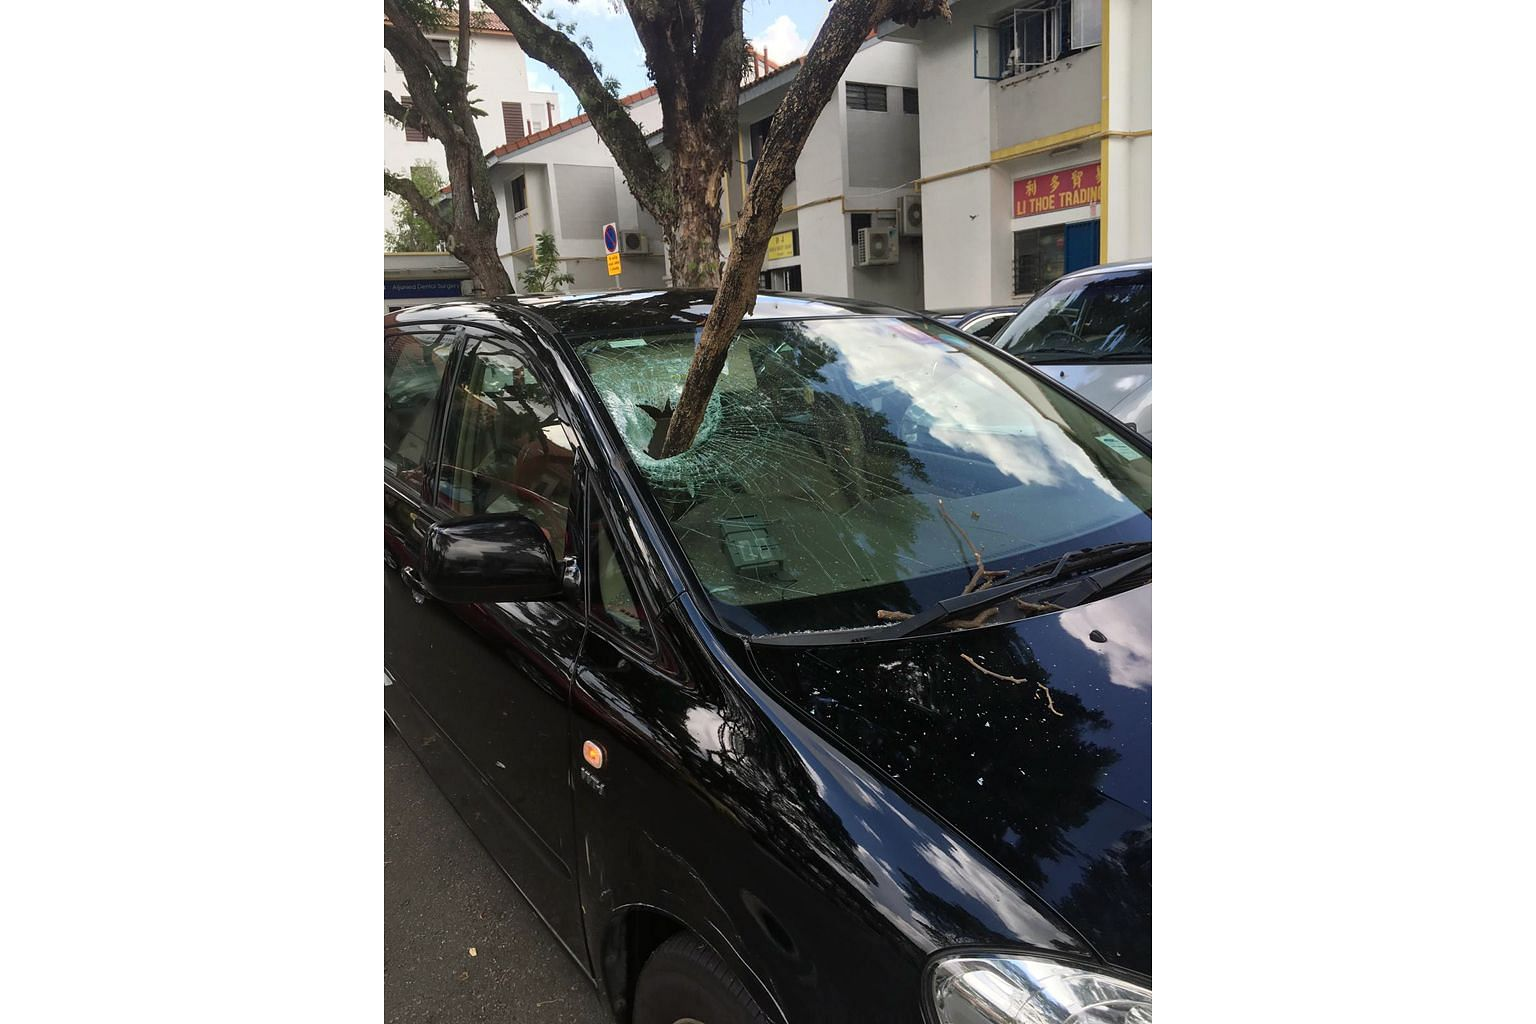 The falling tree branch pierced the windscreen of the car (above), which was at a carpark near Block 119 Aljunied Avenue 2 last Saturday morning. The driver, a man in his 50s, suffered gashes on his right shin. The Marine Parade Town Council is conducting